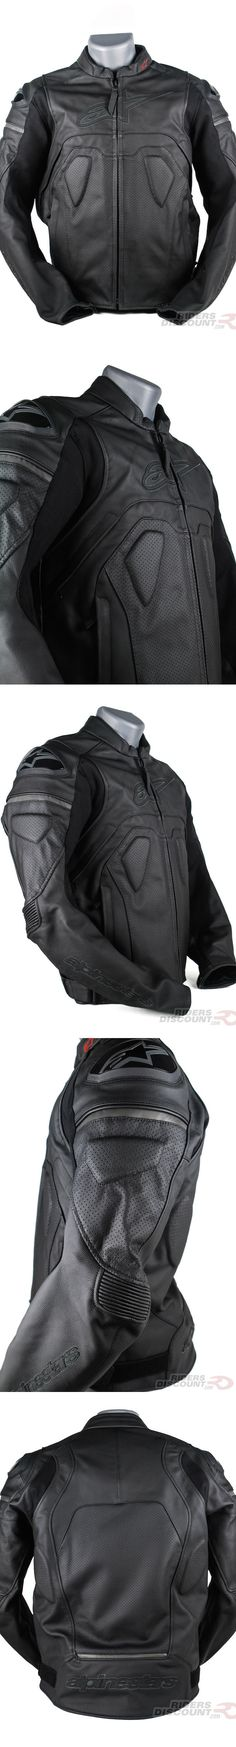 Constructed of 1.1 mm full-grain leather, the Alpinestars Men's Core Airflow Leather Jacket is extremely abrasion resistant. It incorporates accordion poly-textile stretch panels near the elbows and under the arms for extra flexibility and comfort. Zippered air intakes and large perforated panels allow for excellent ventilation. Not to mention it looks super stealthy thanks to the blacked-out logos.